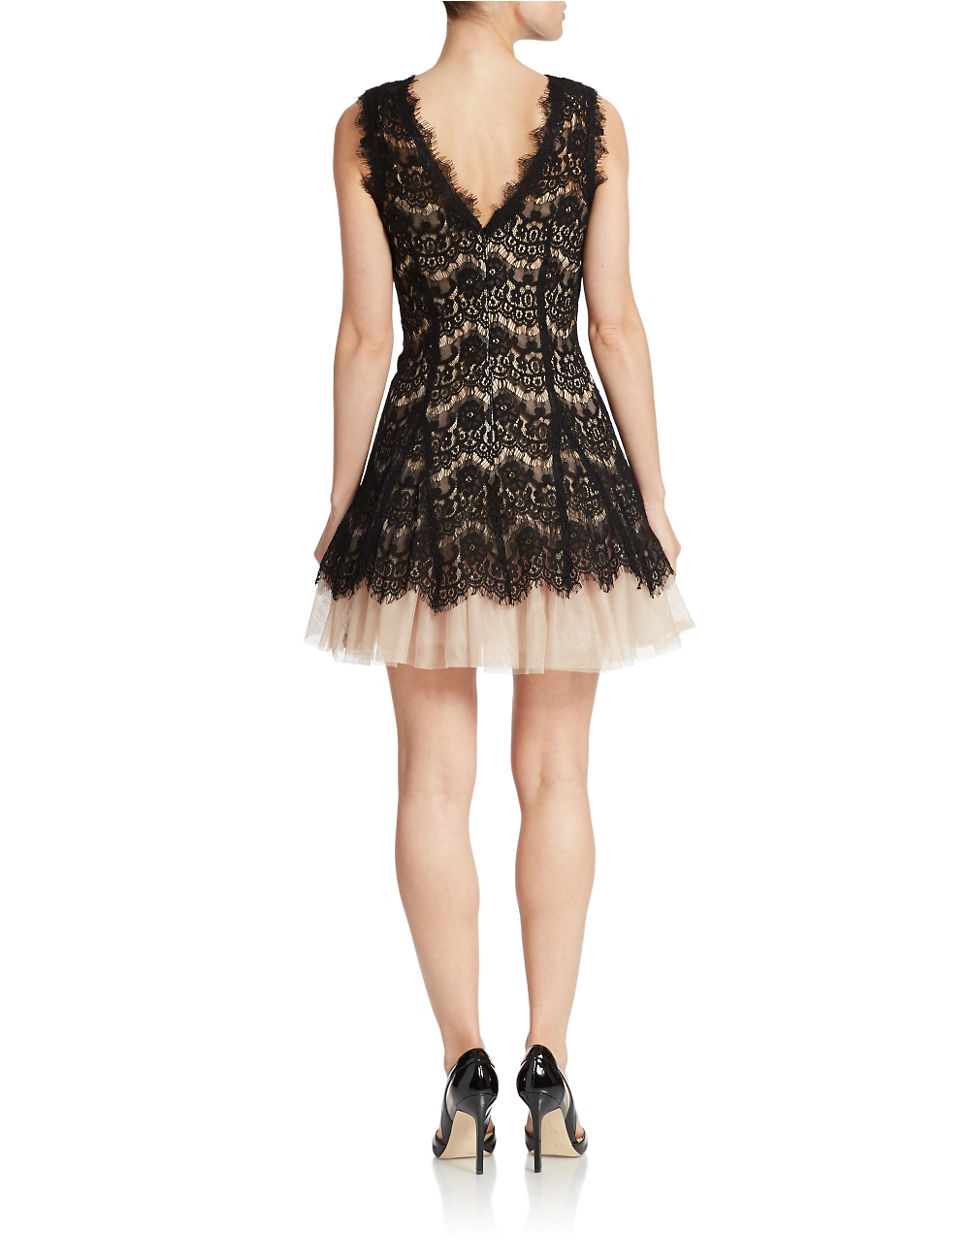 Black Lace Dress With Nude Shoes